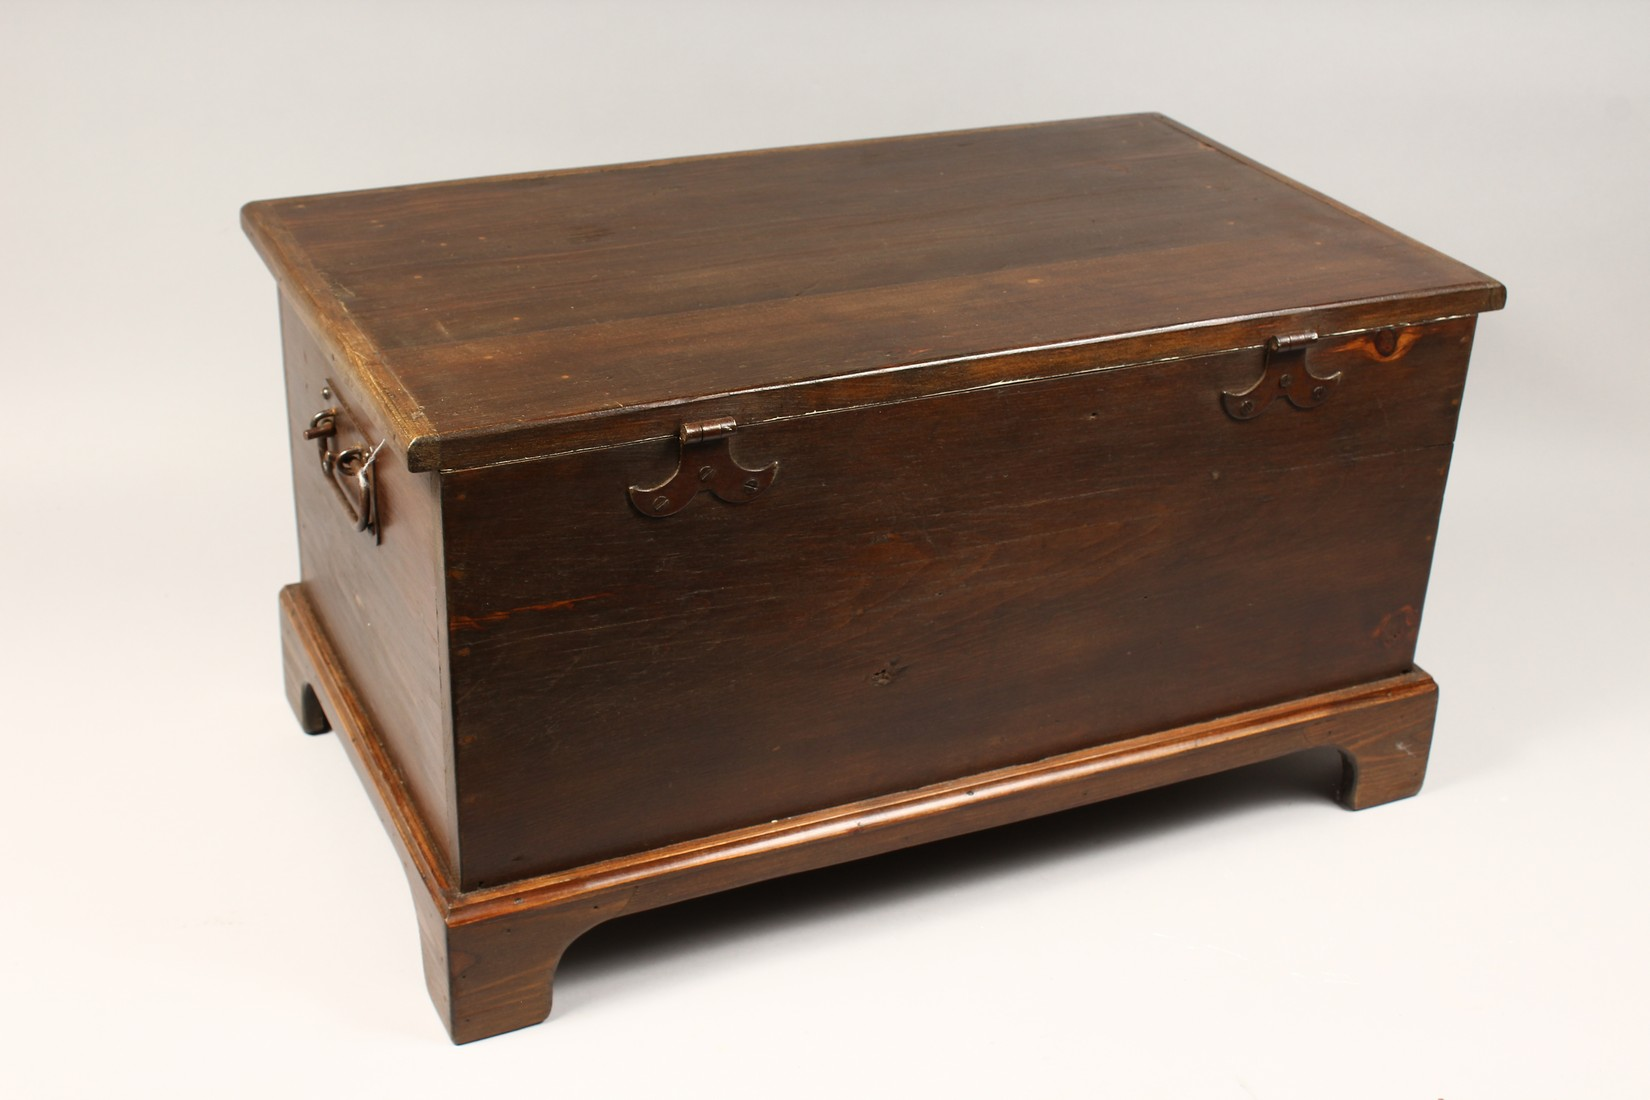 A WOODEN BOX ON BRACKET FEET 24ins - Image 3 of 3